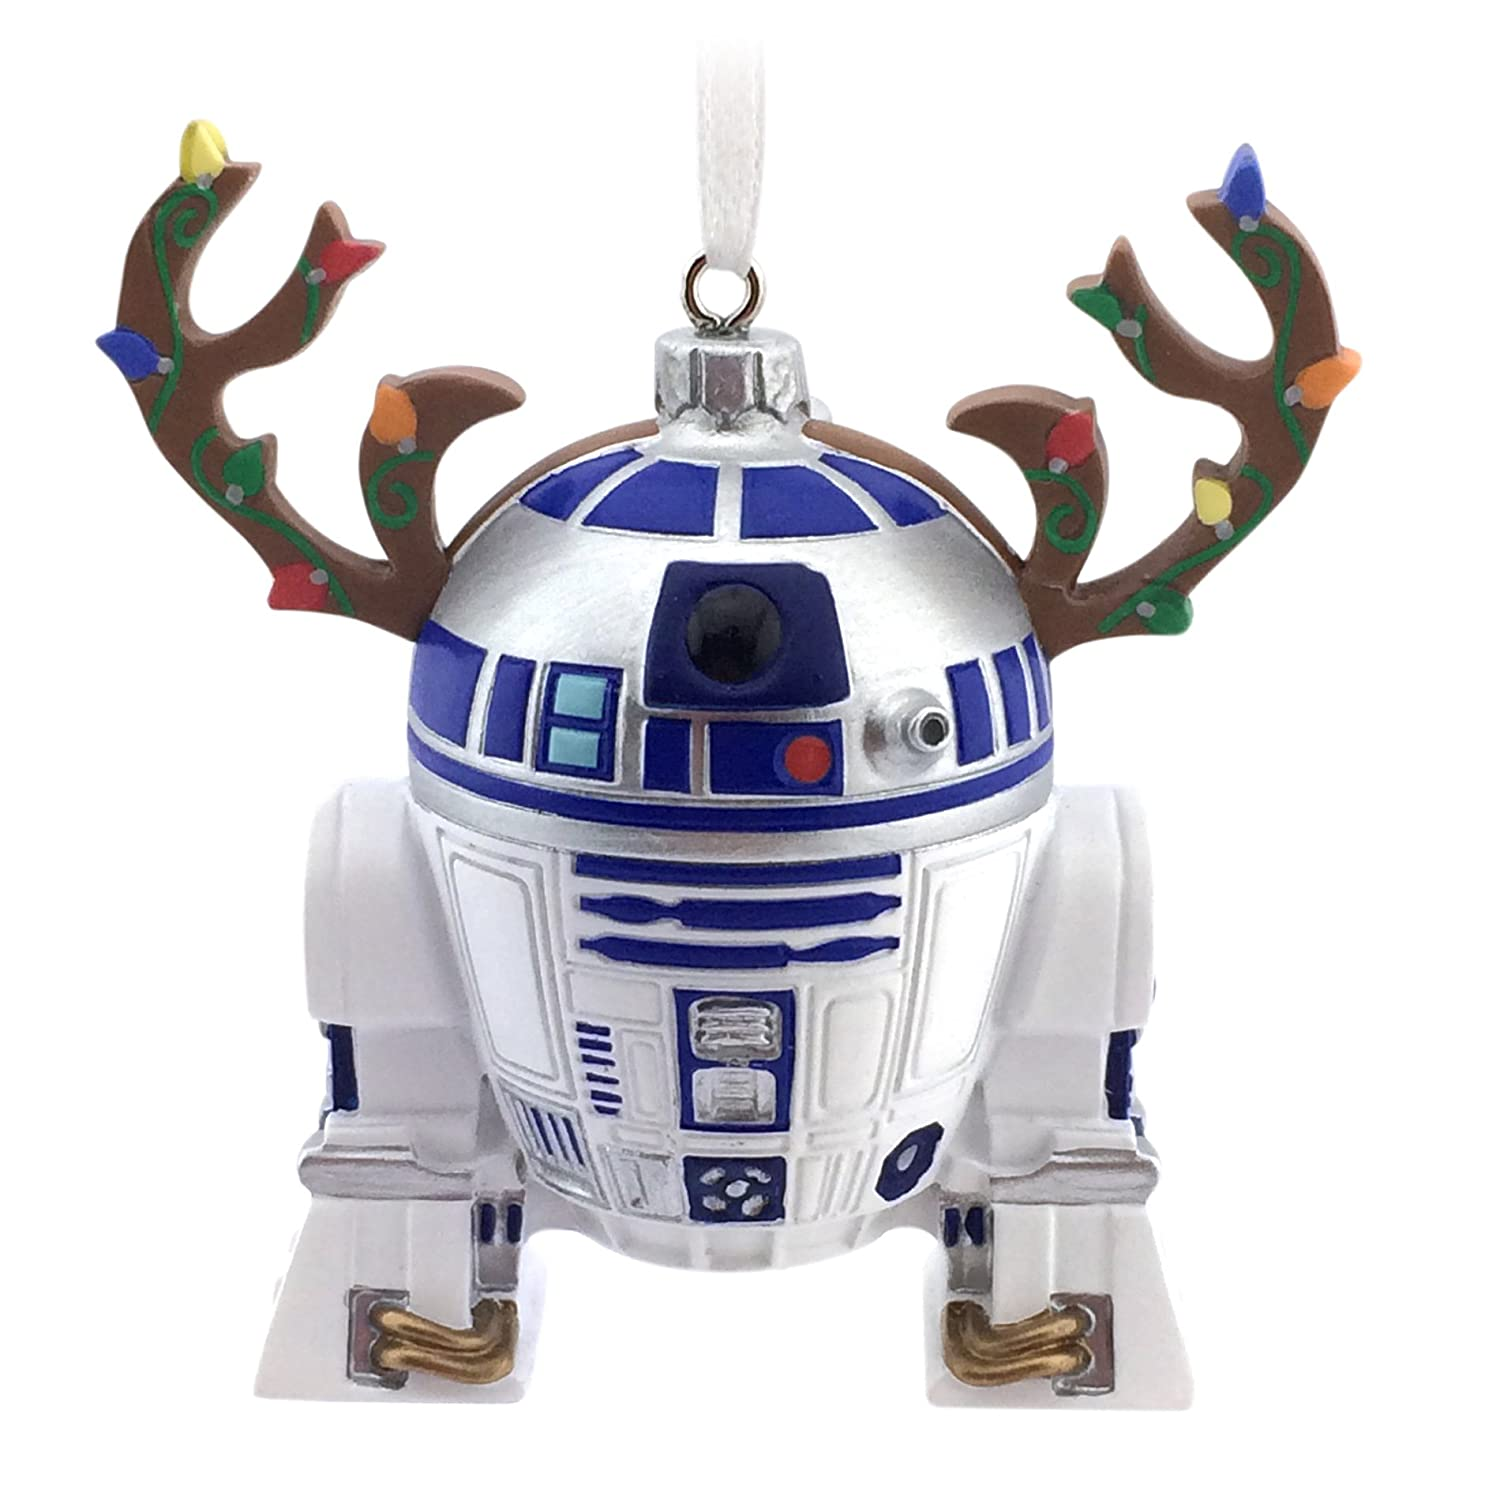 Hallmark Lucasfilm Star Wars R2D2 Ornament Christmas Tree